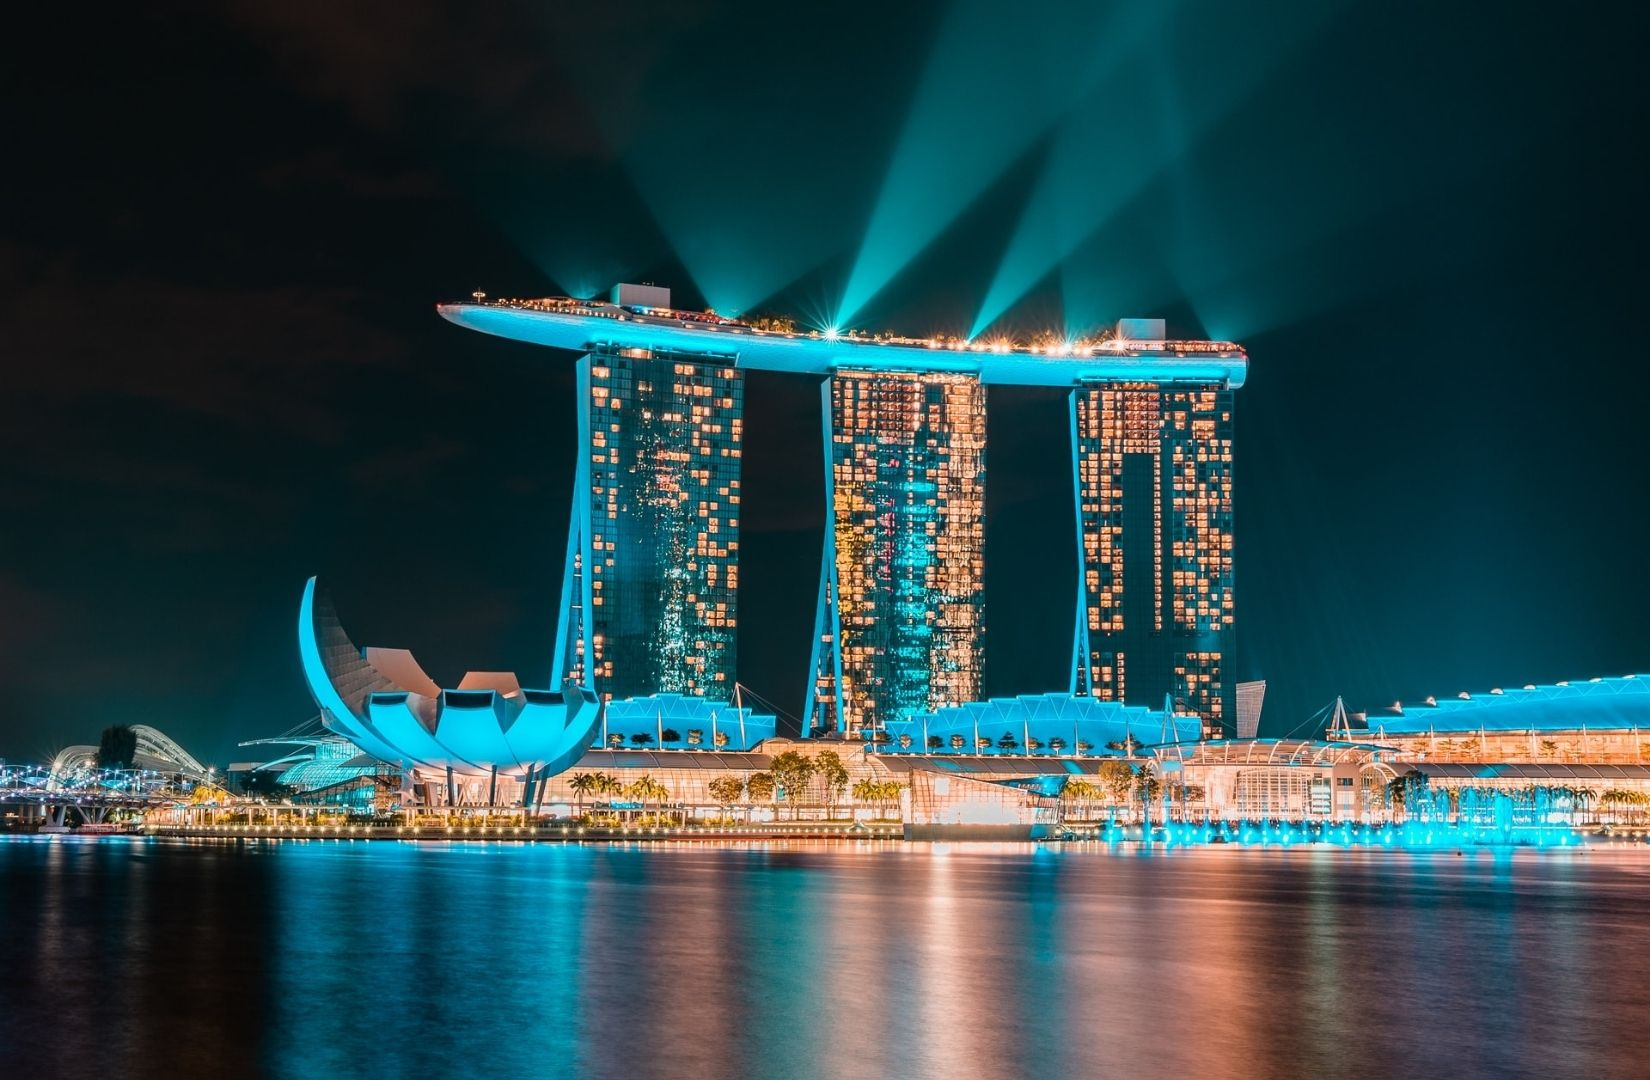 Das Marina Bay Sands in Singapore erinnert an Science Fiction (Foto: Shawnn Tan, Unsplash.com)